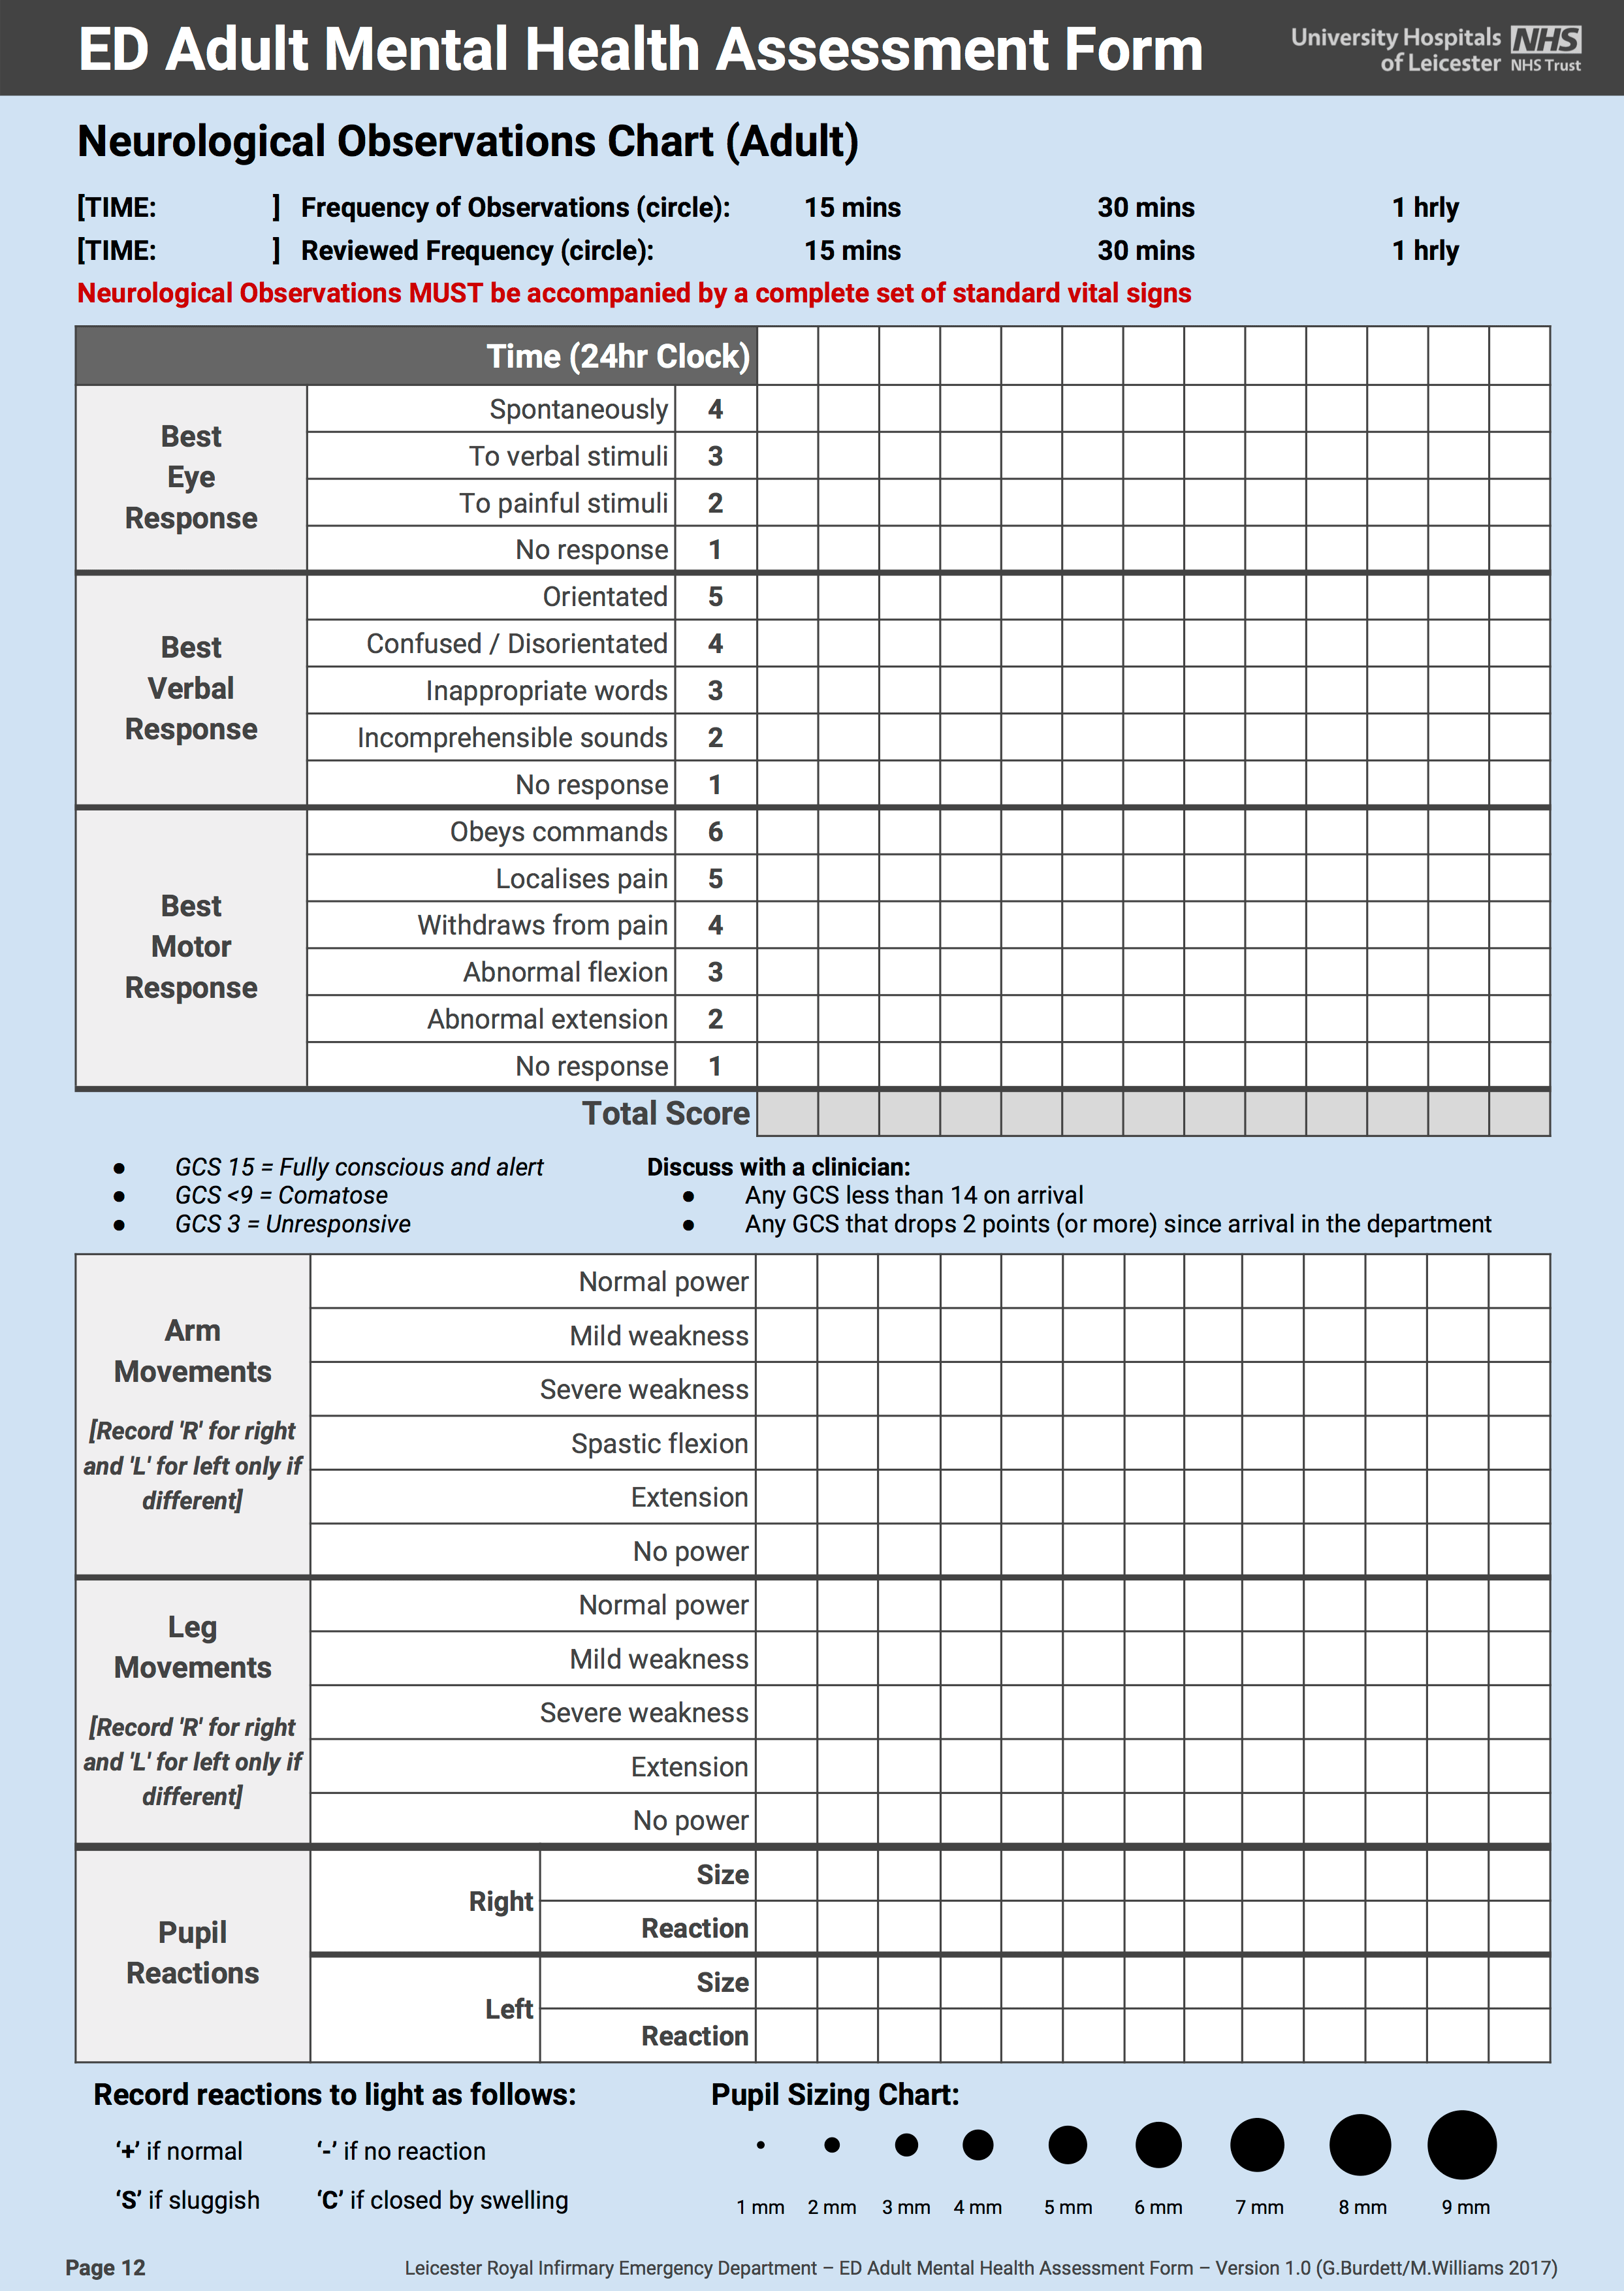 UHL Adult Mental Health Triage Form - Neurological Observations Chart (Page 12).jpg